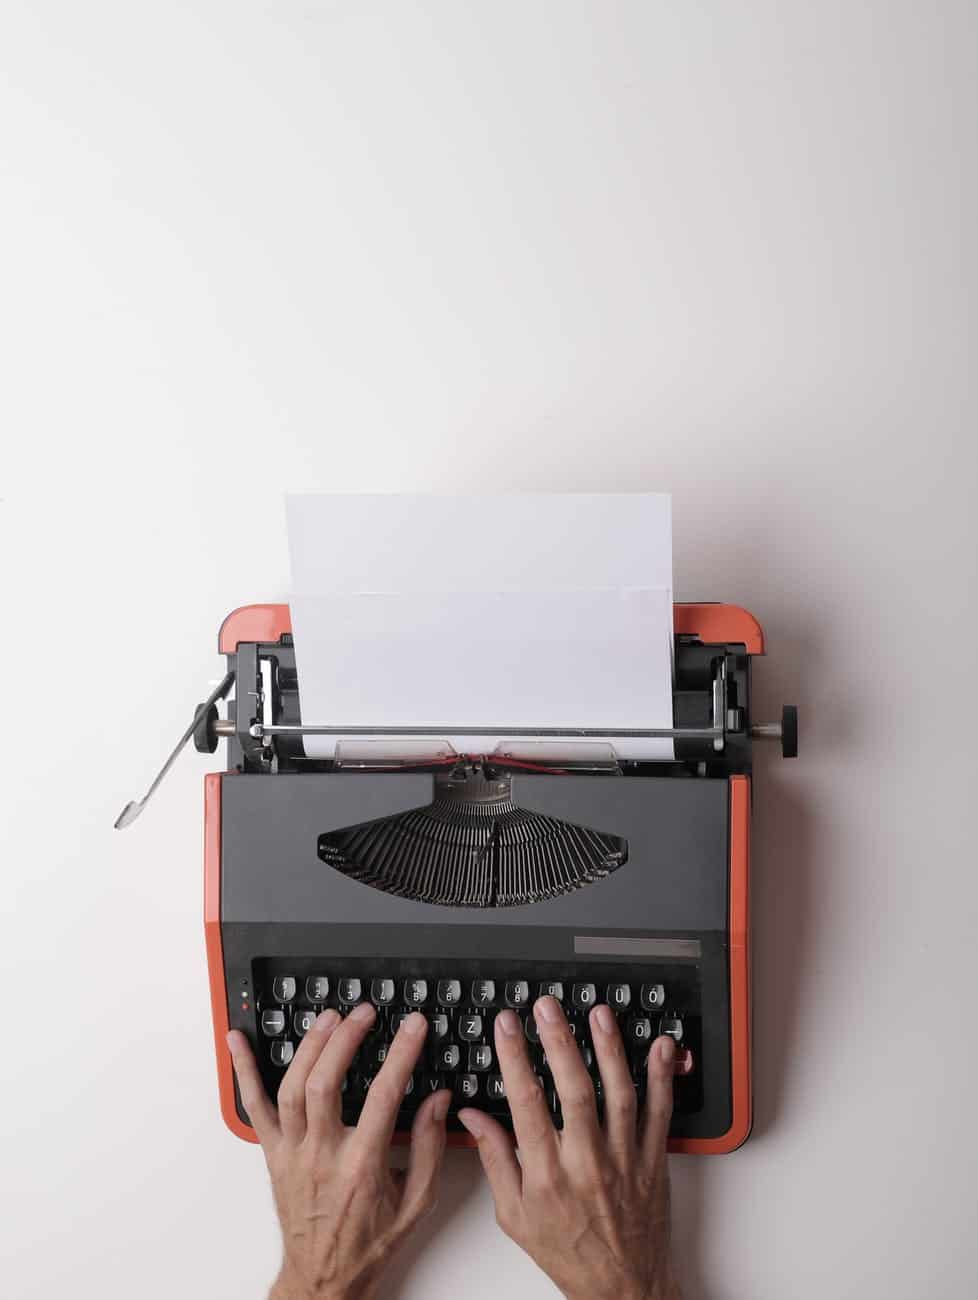 Short Story Compilation writer working on typewriter in office